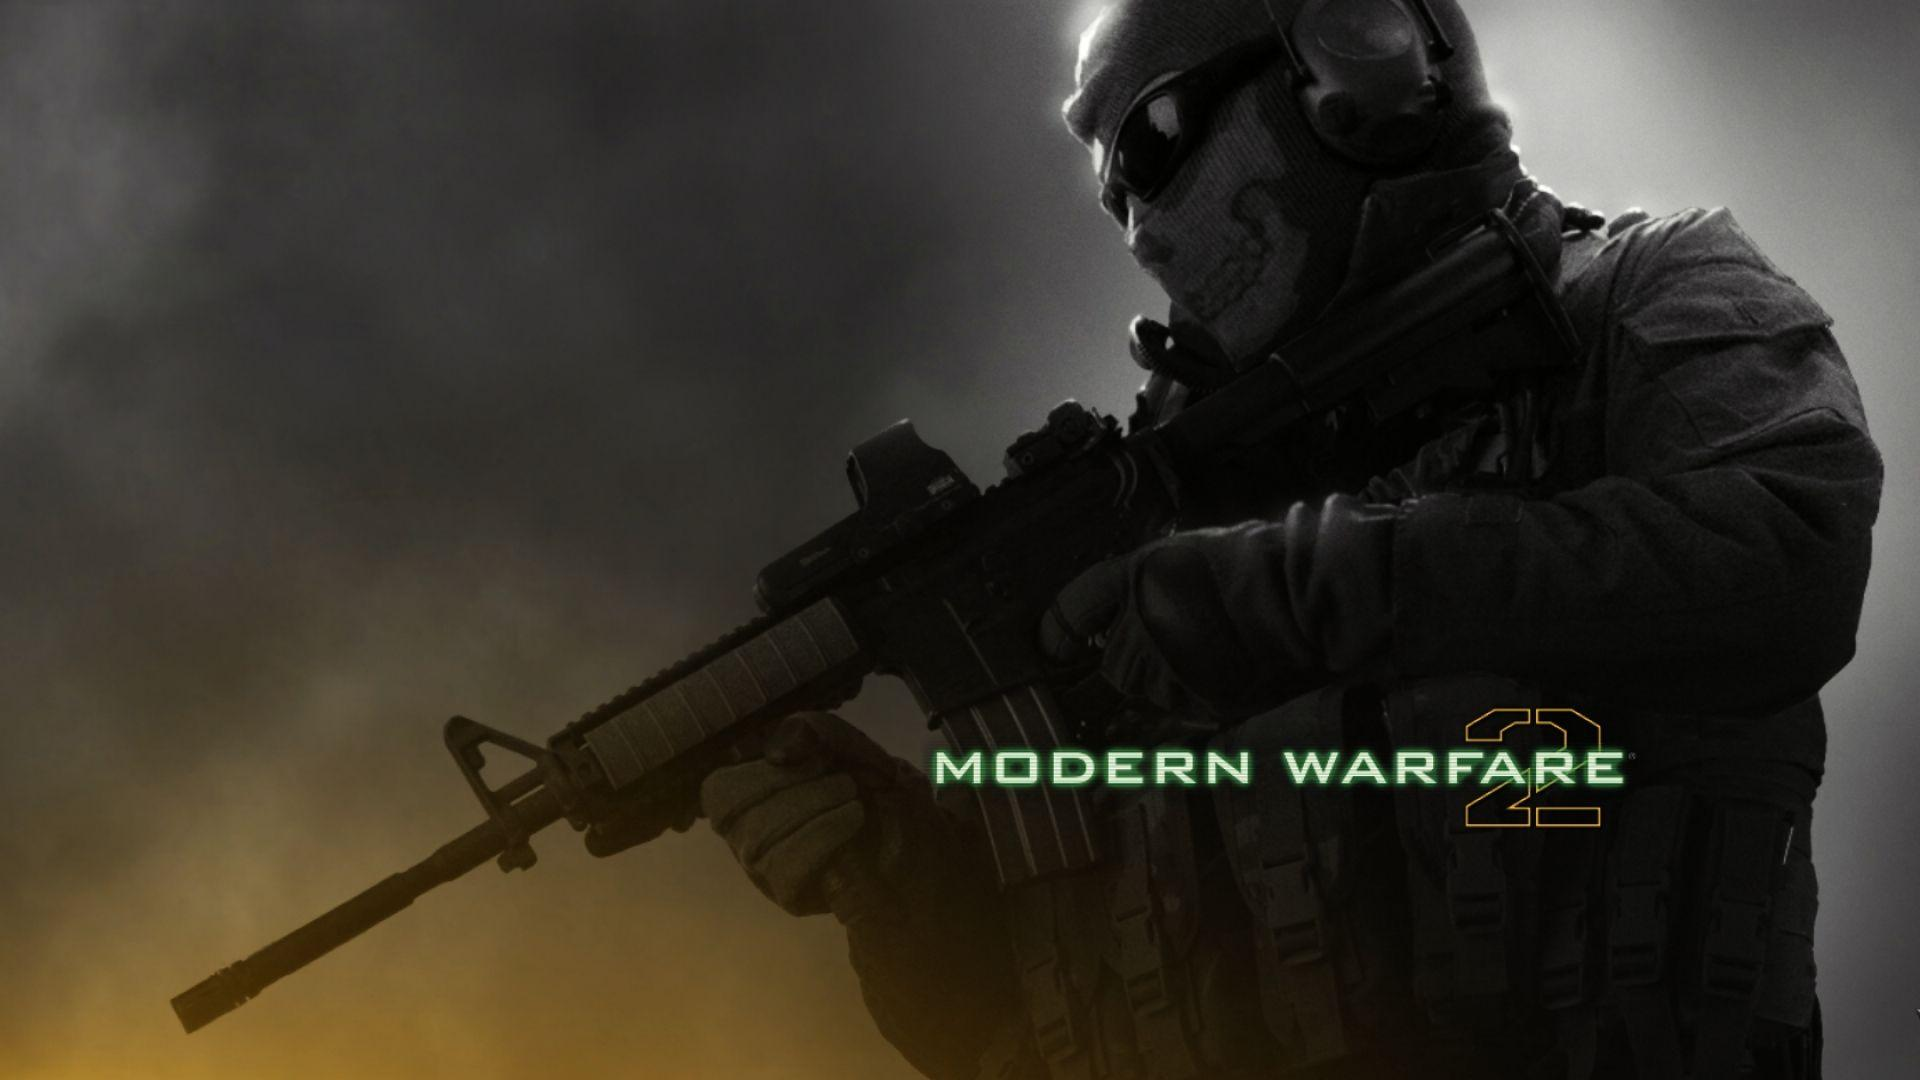 Call Of Duty Modern Warfare 2 Hd Wallpapers Wallpaper Cave